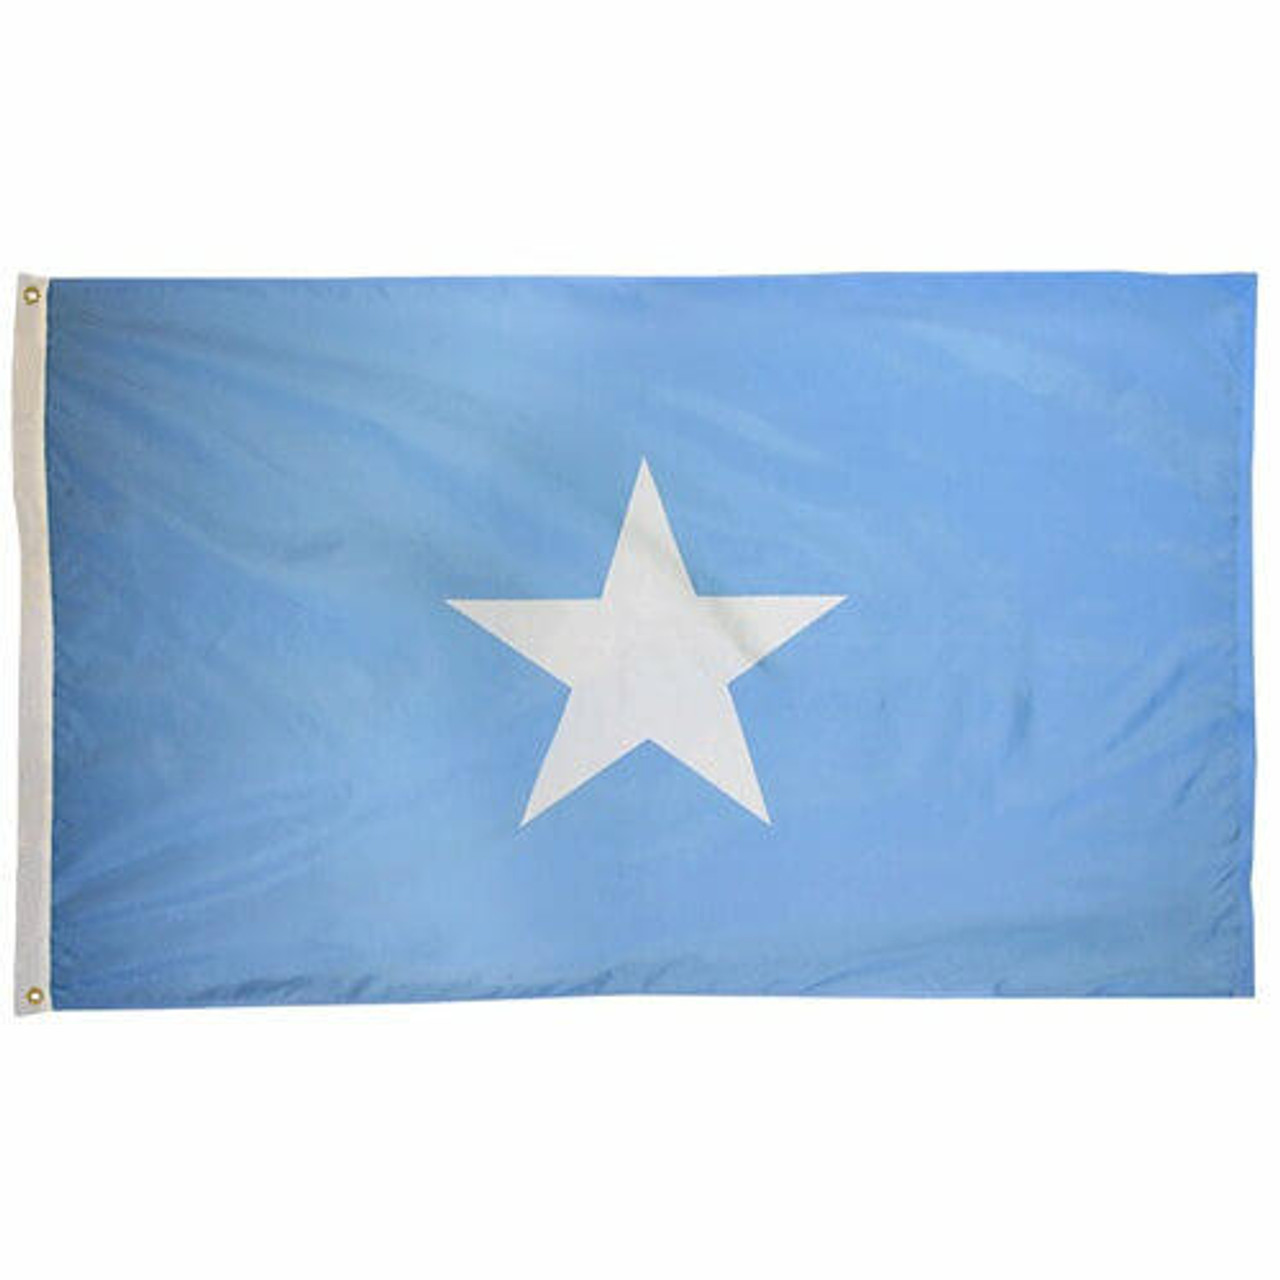 Somalia Flag with light blue background and white five point star at center. White header and brass grommets.